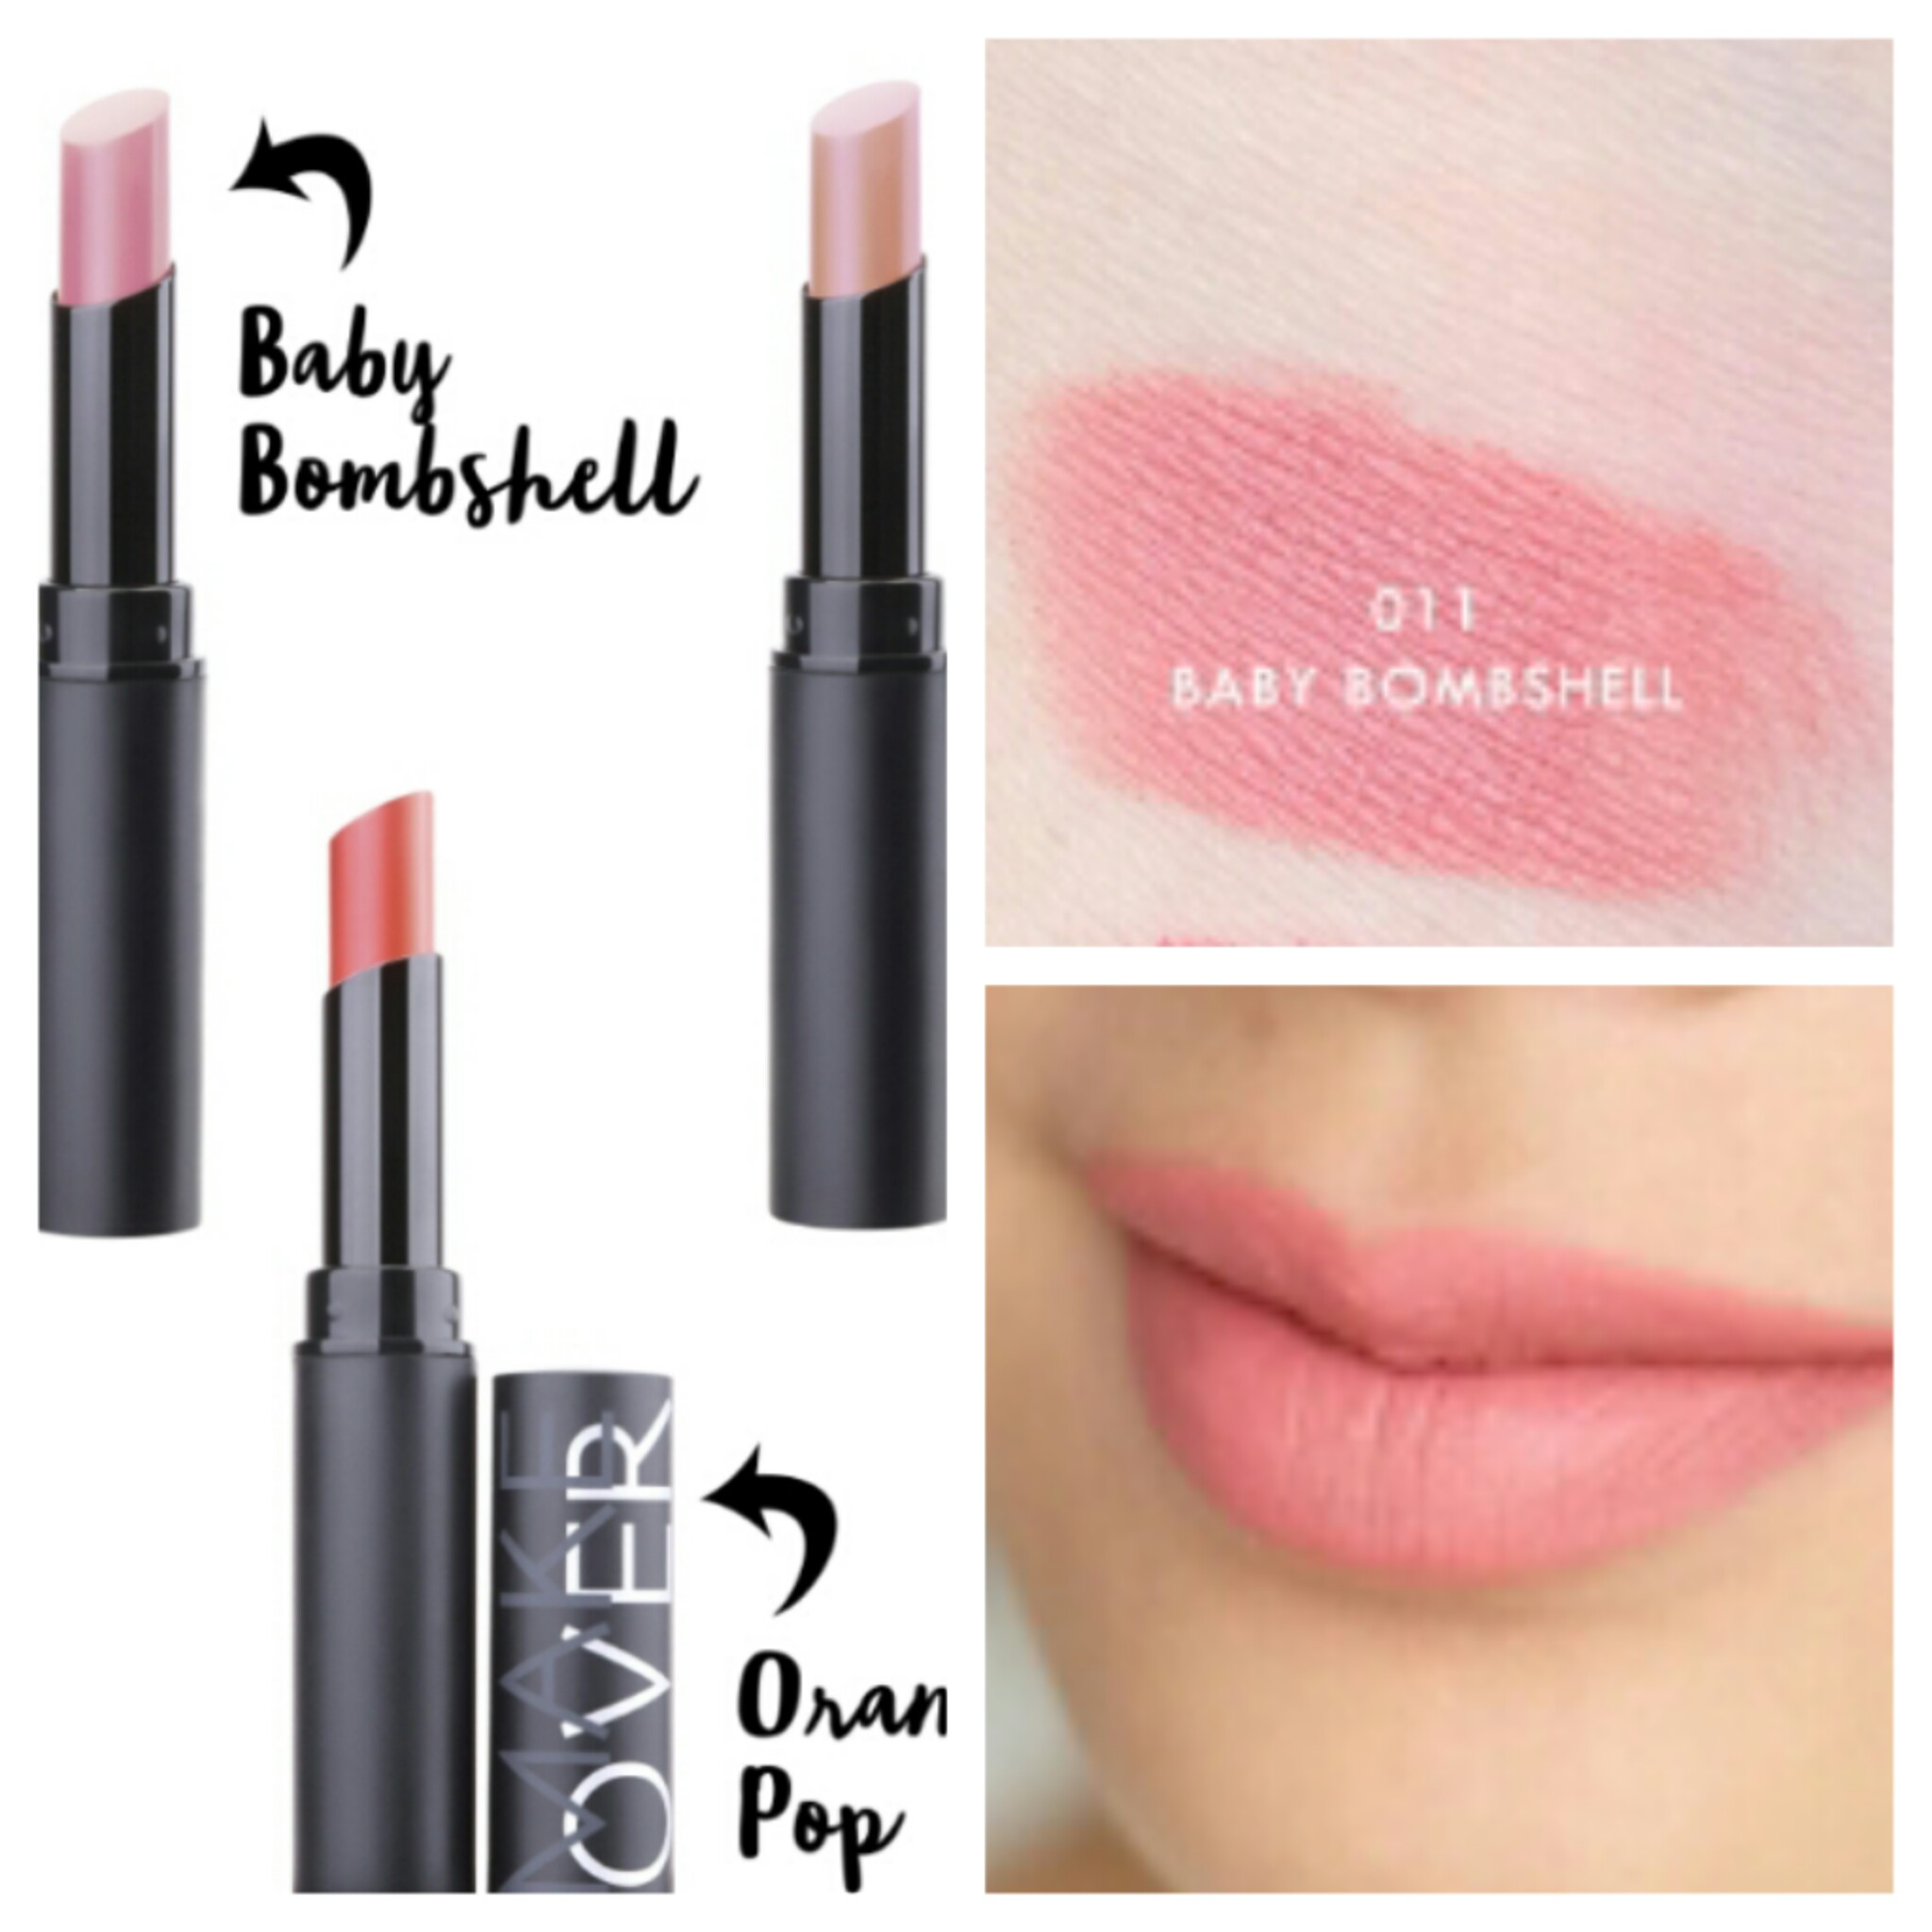 how to make lipstick matte with baby powder